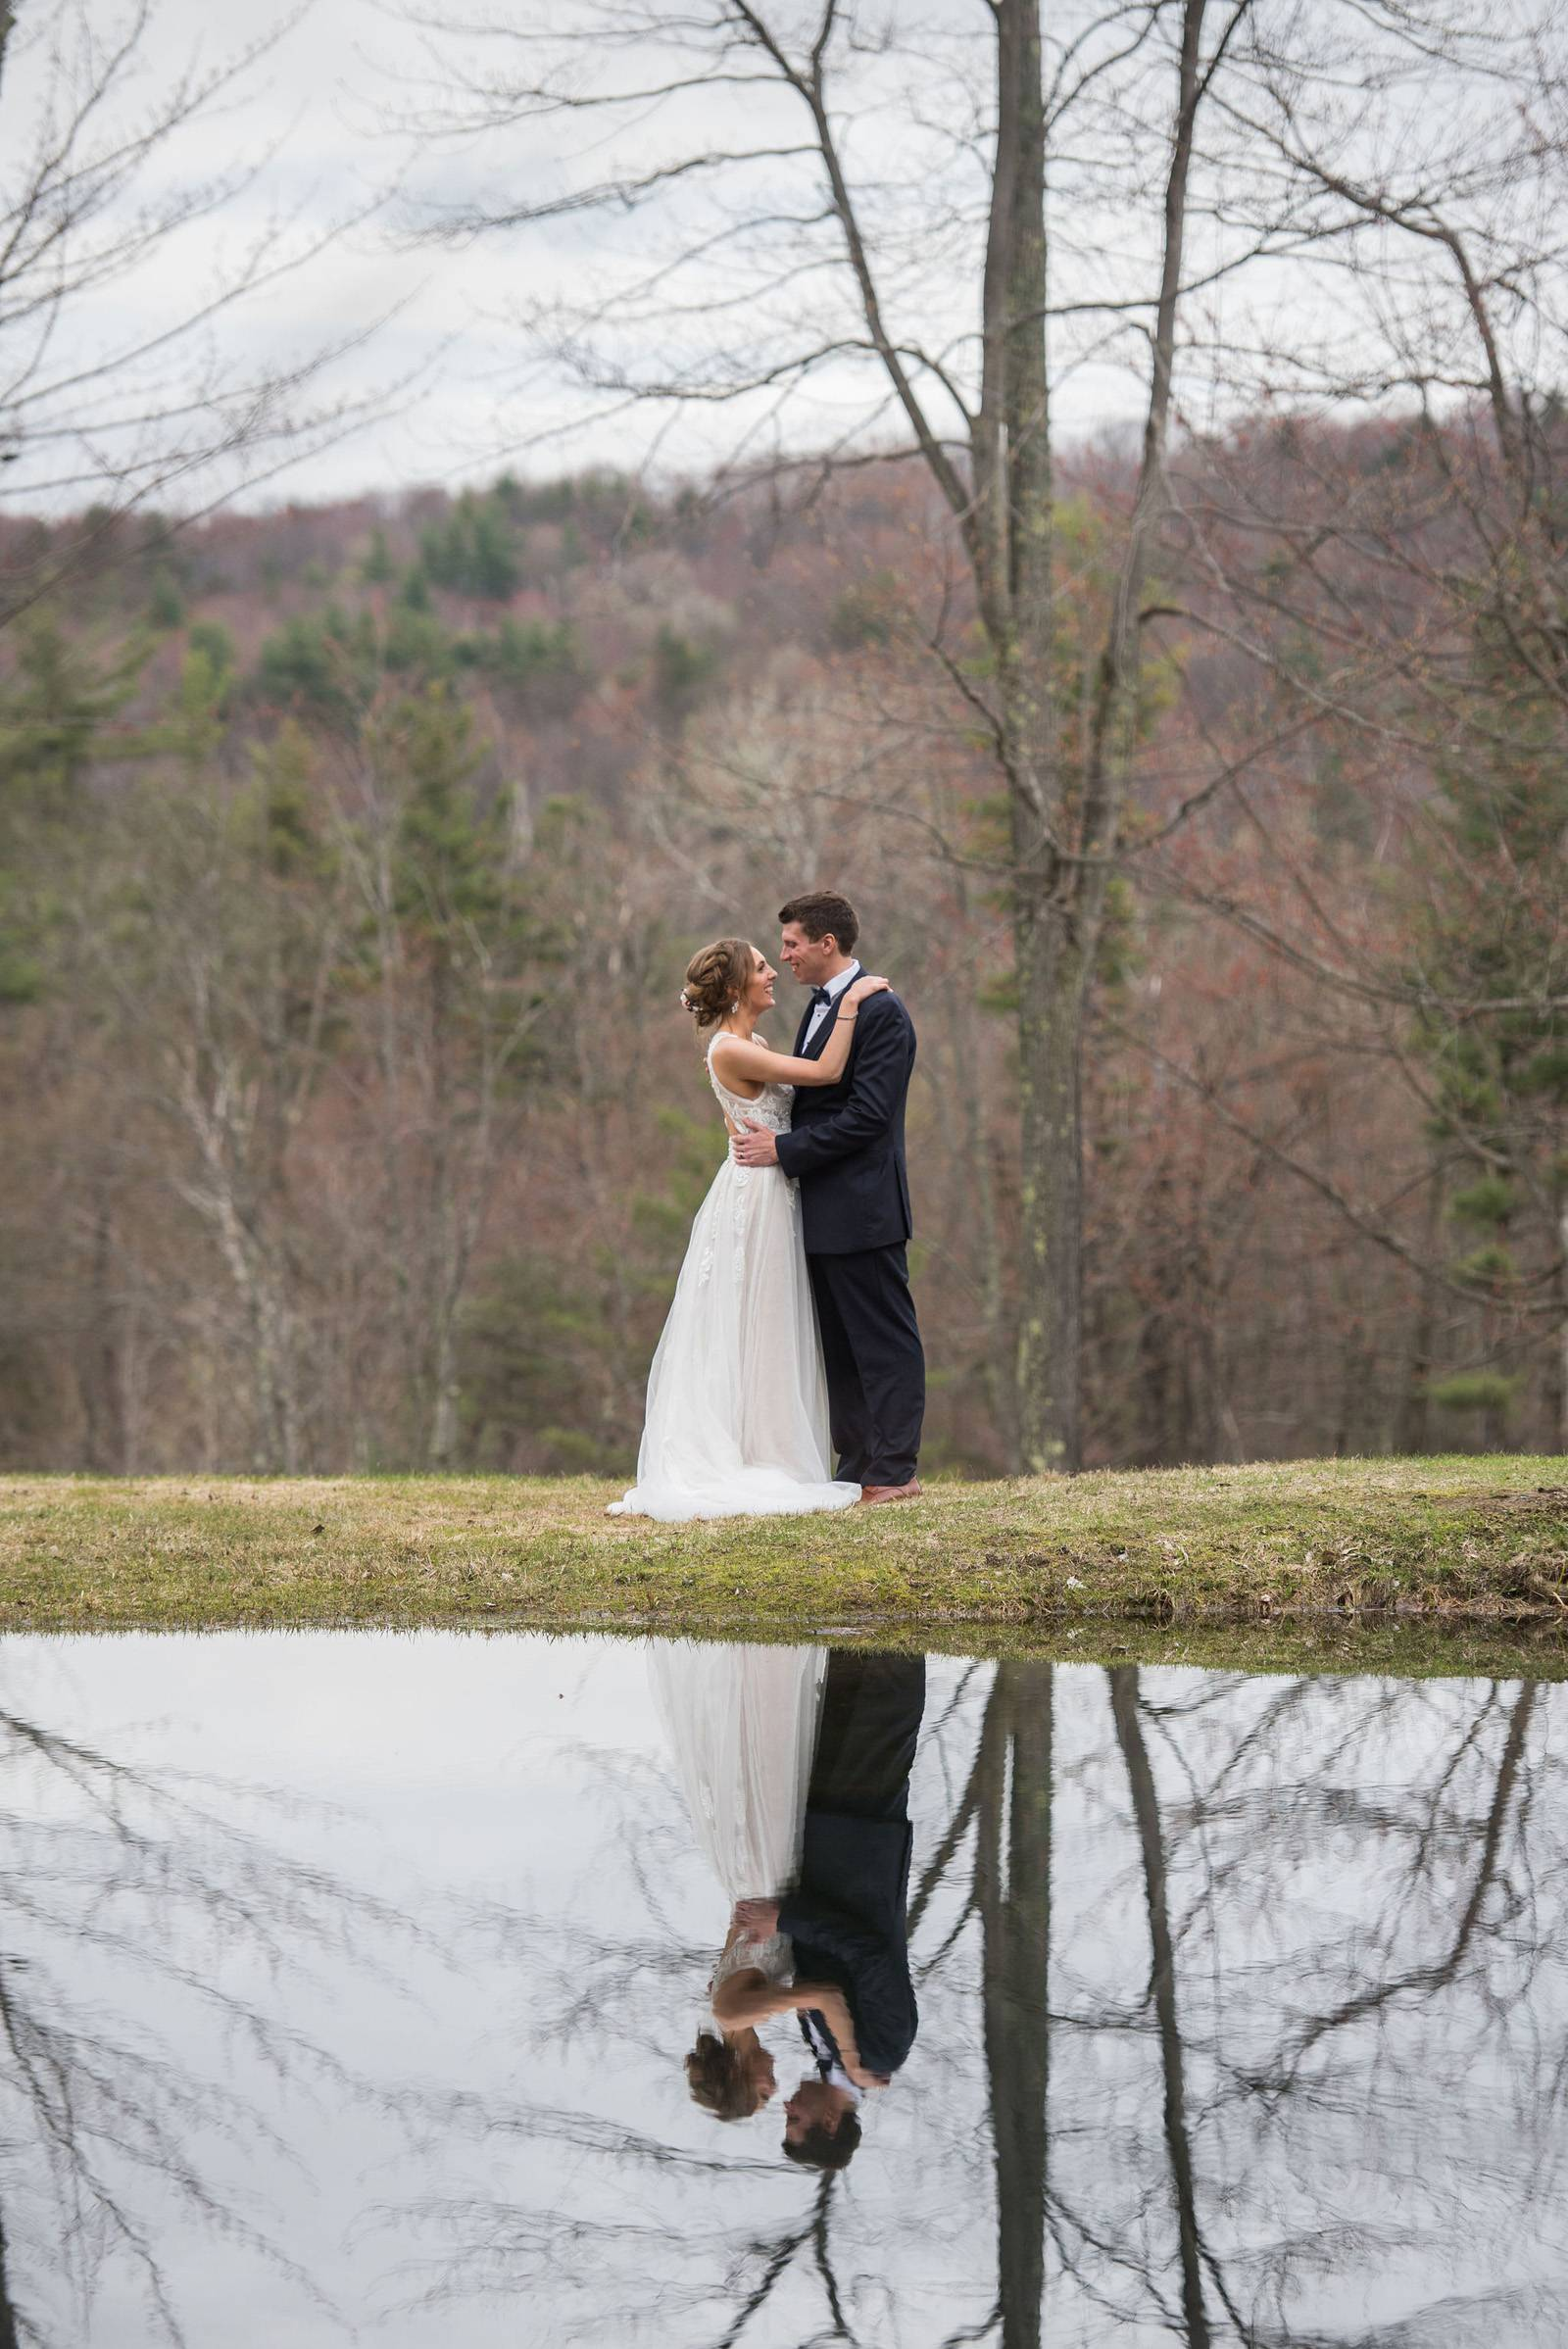 Portrait of bride and groom reflected in pond at Sleepy Hollow Inn in Vermont on spring wedding day